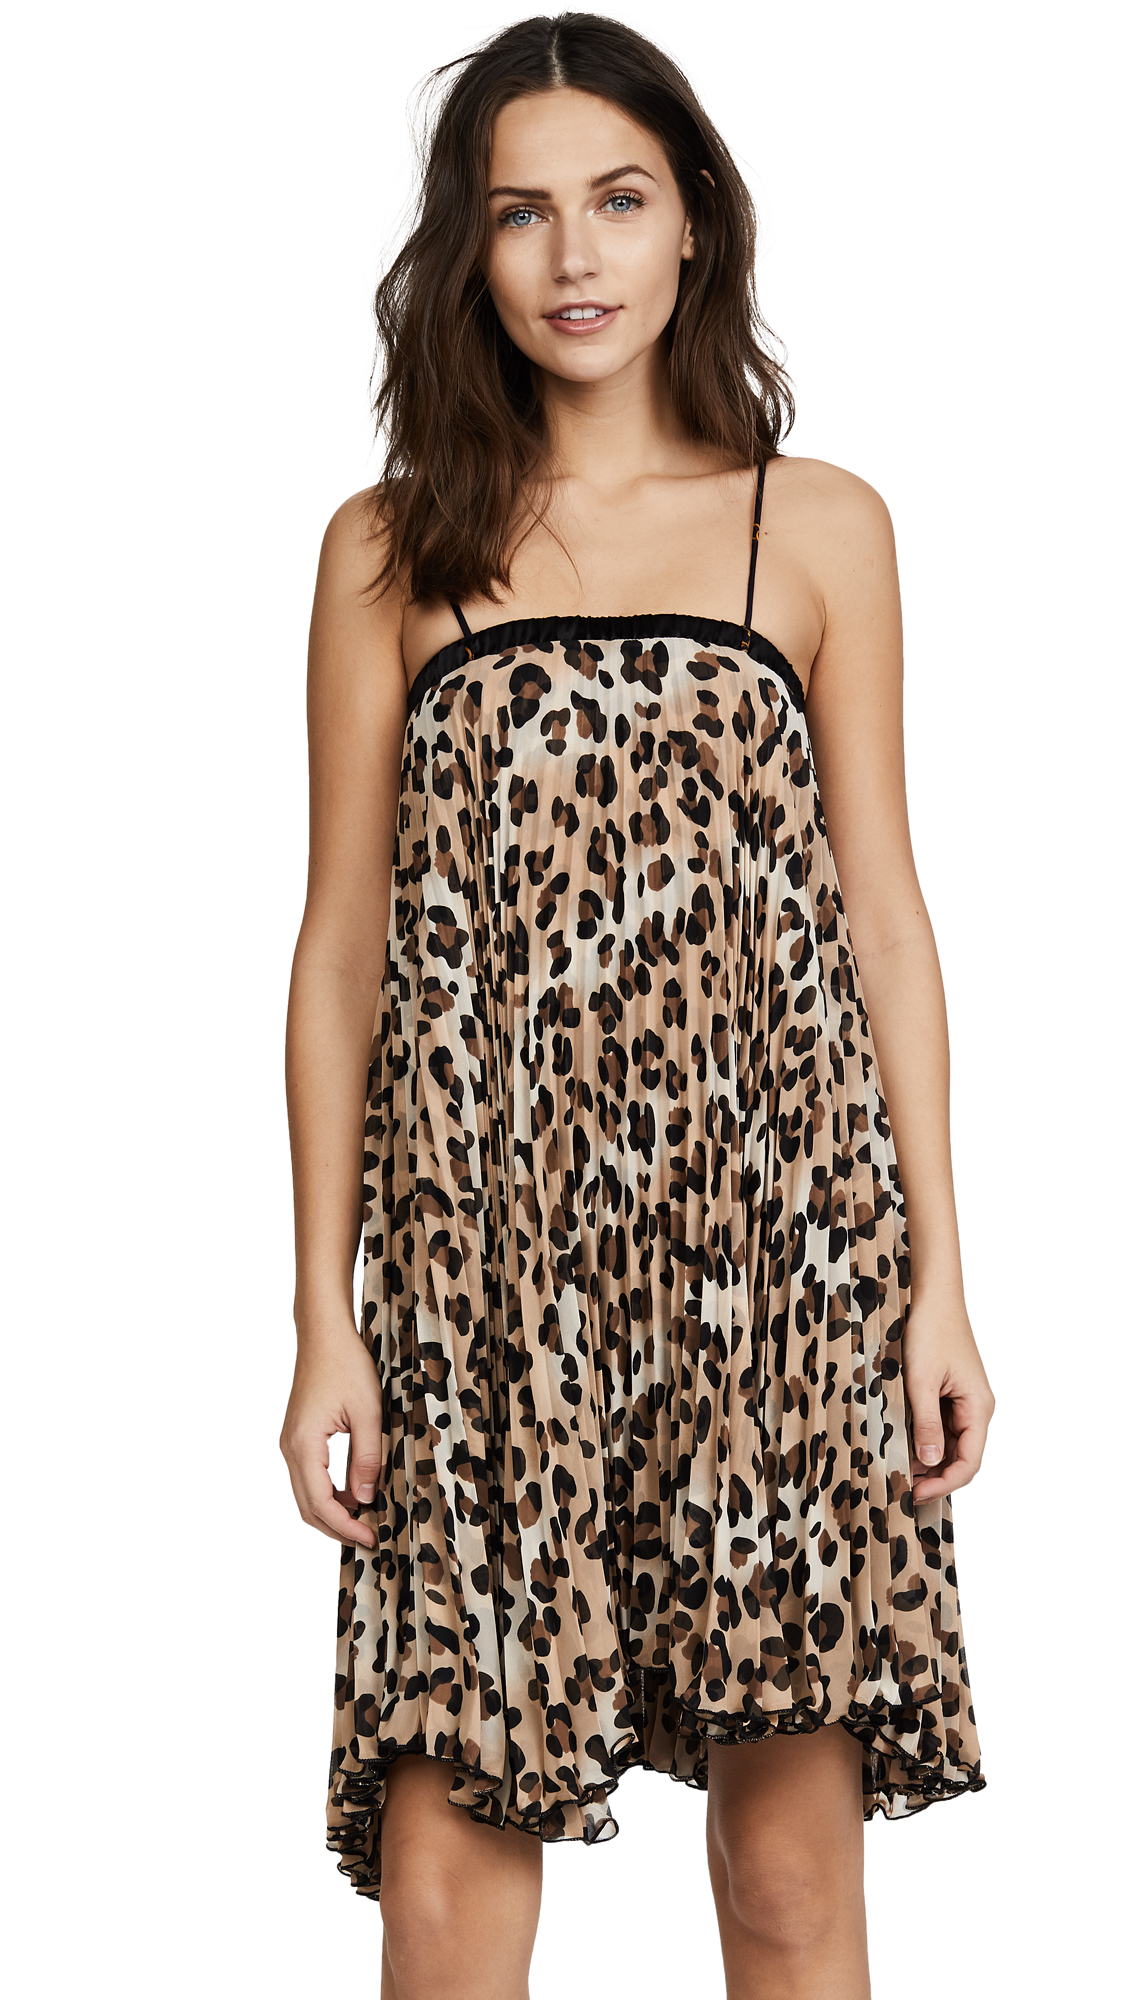 Loyd/Ford Pleat Leopard Dress